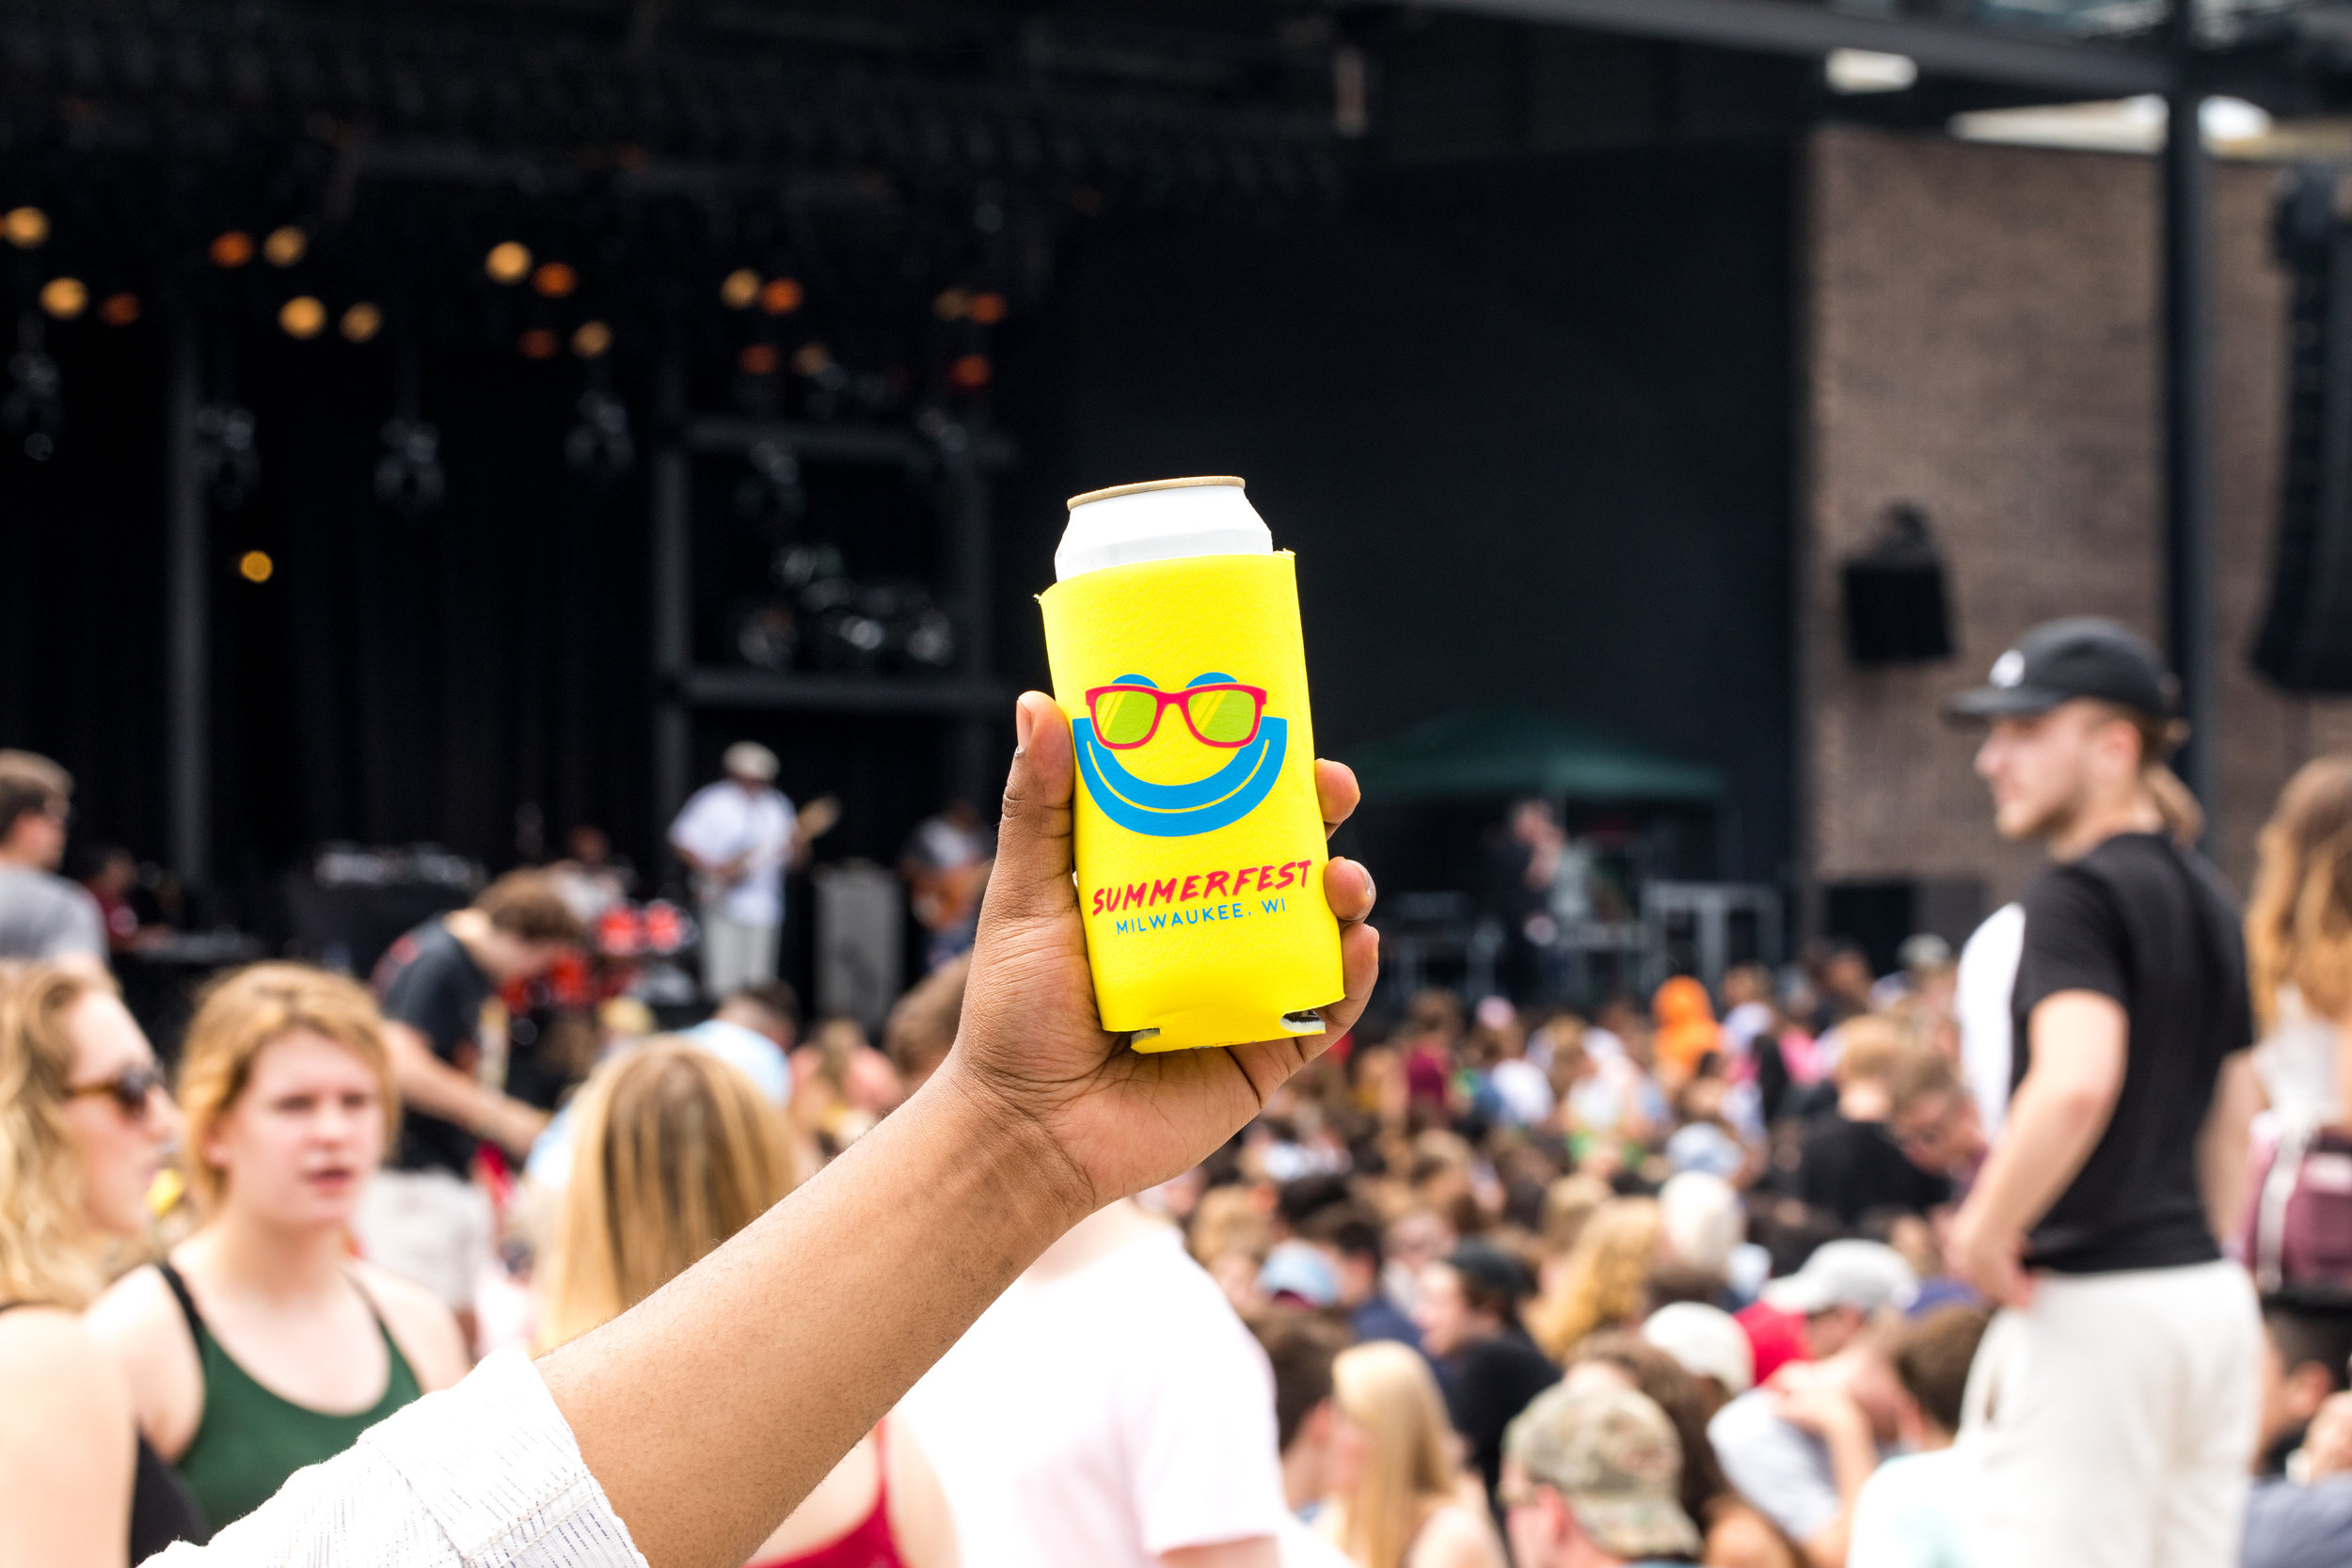 Things to do in Milwaukee, Summerfest